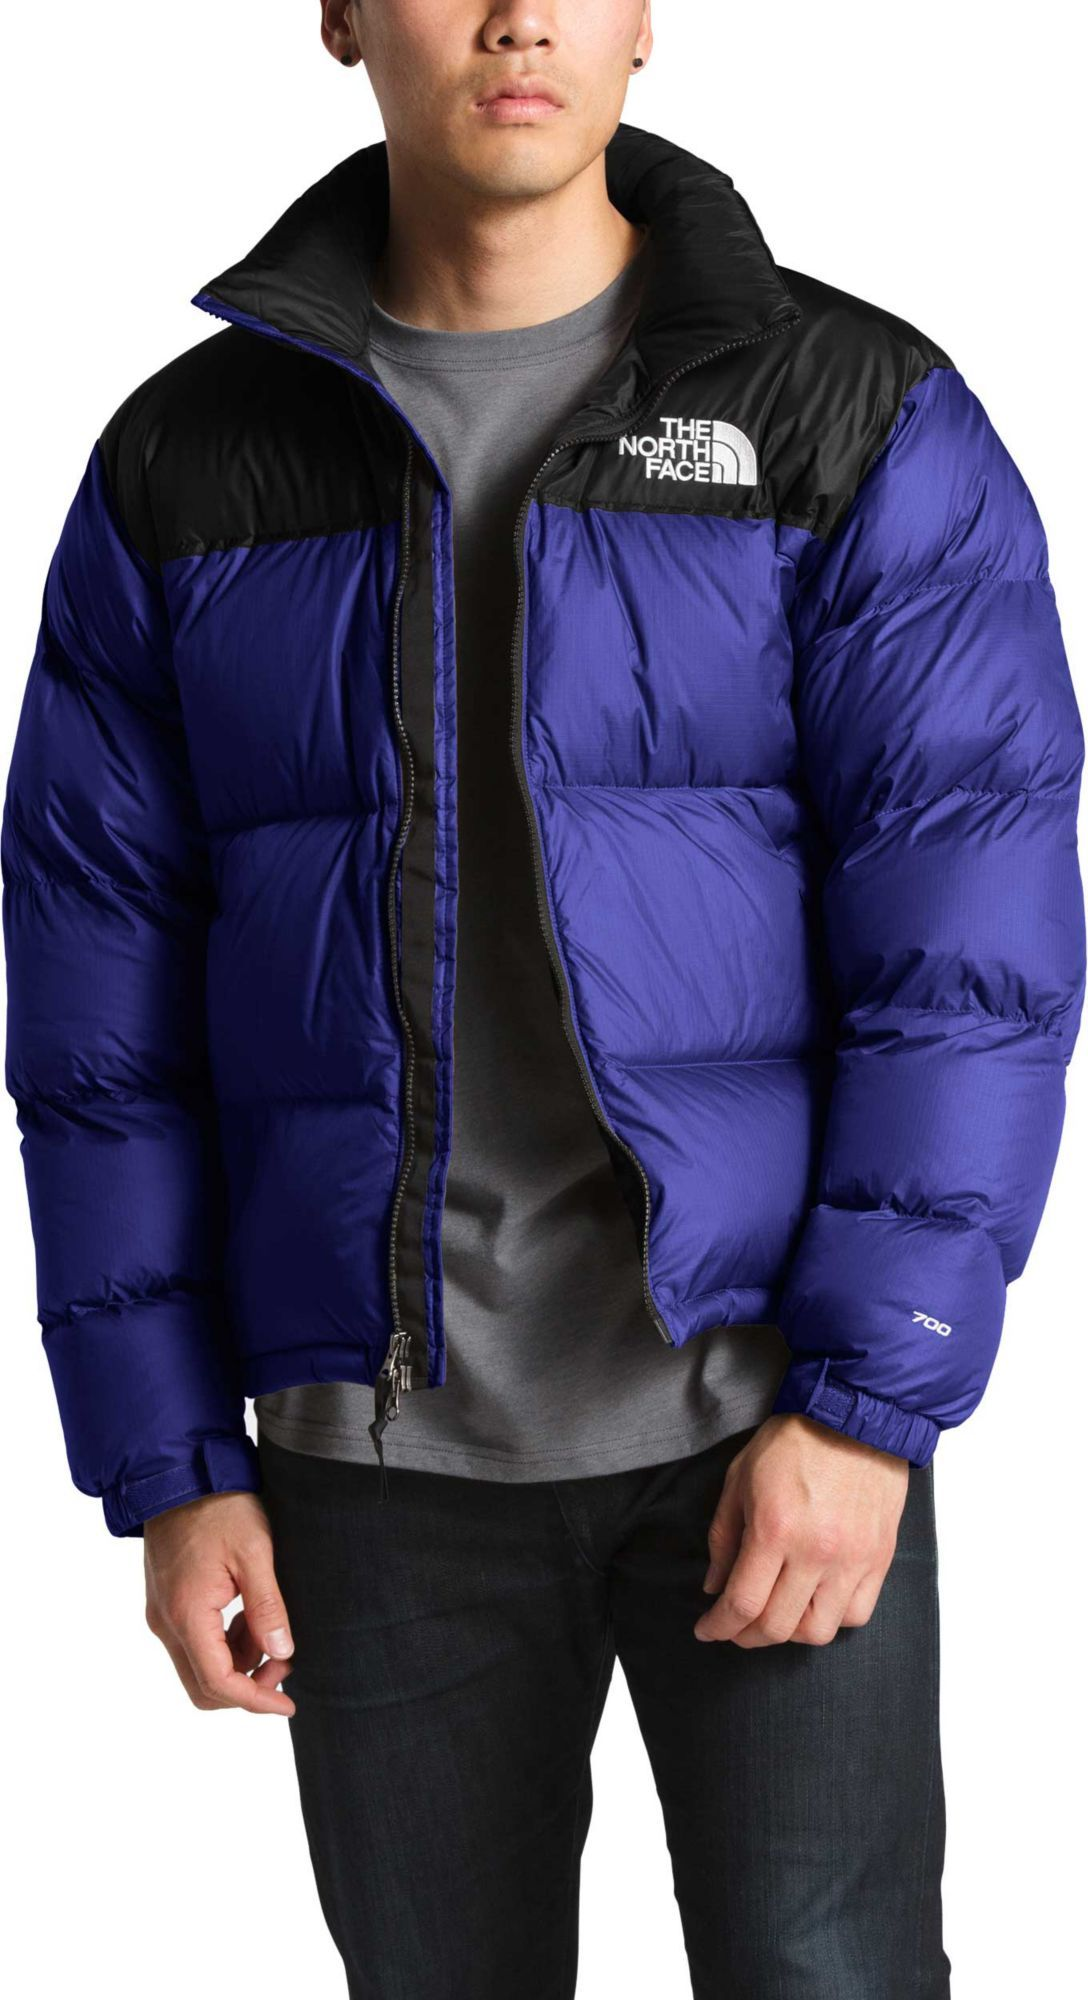 The North Face Men S 1996 Retro Nuptse Jacket North Face Puffer Jacket North Face Nuptse Jacket Cool Outfits For Men